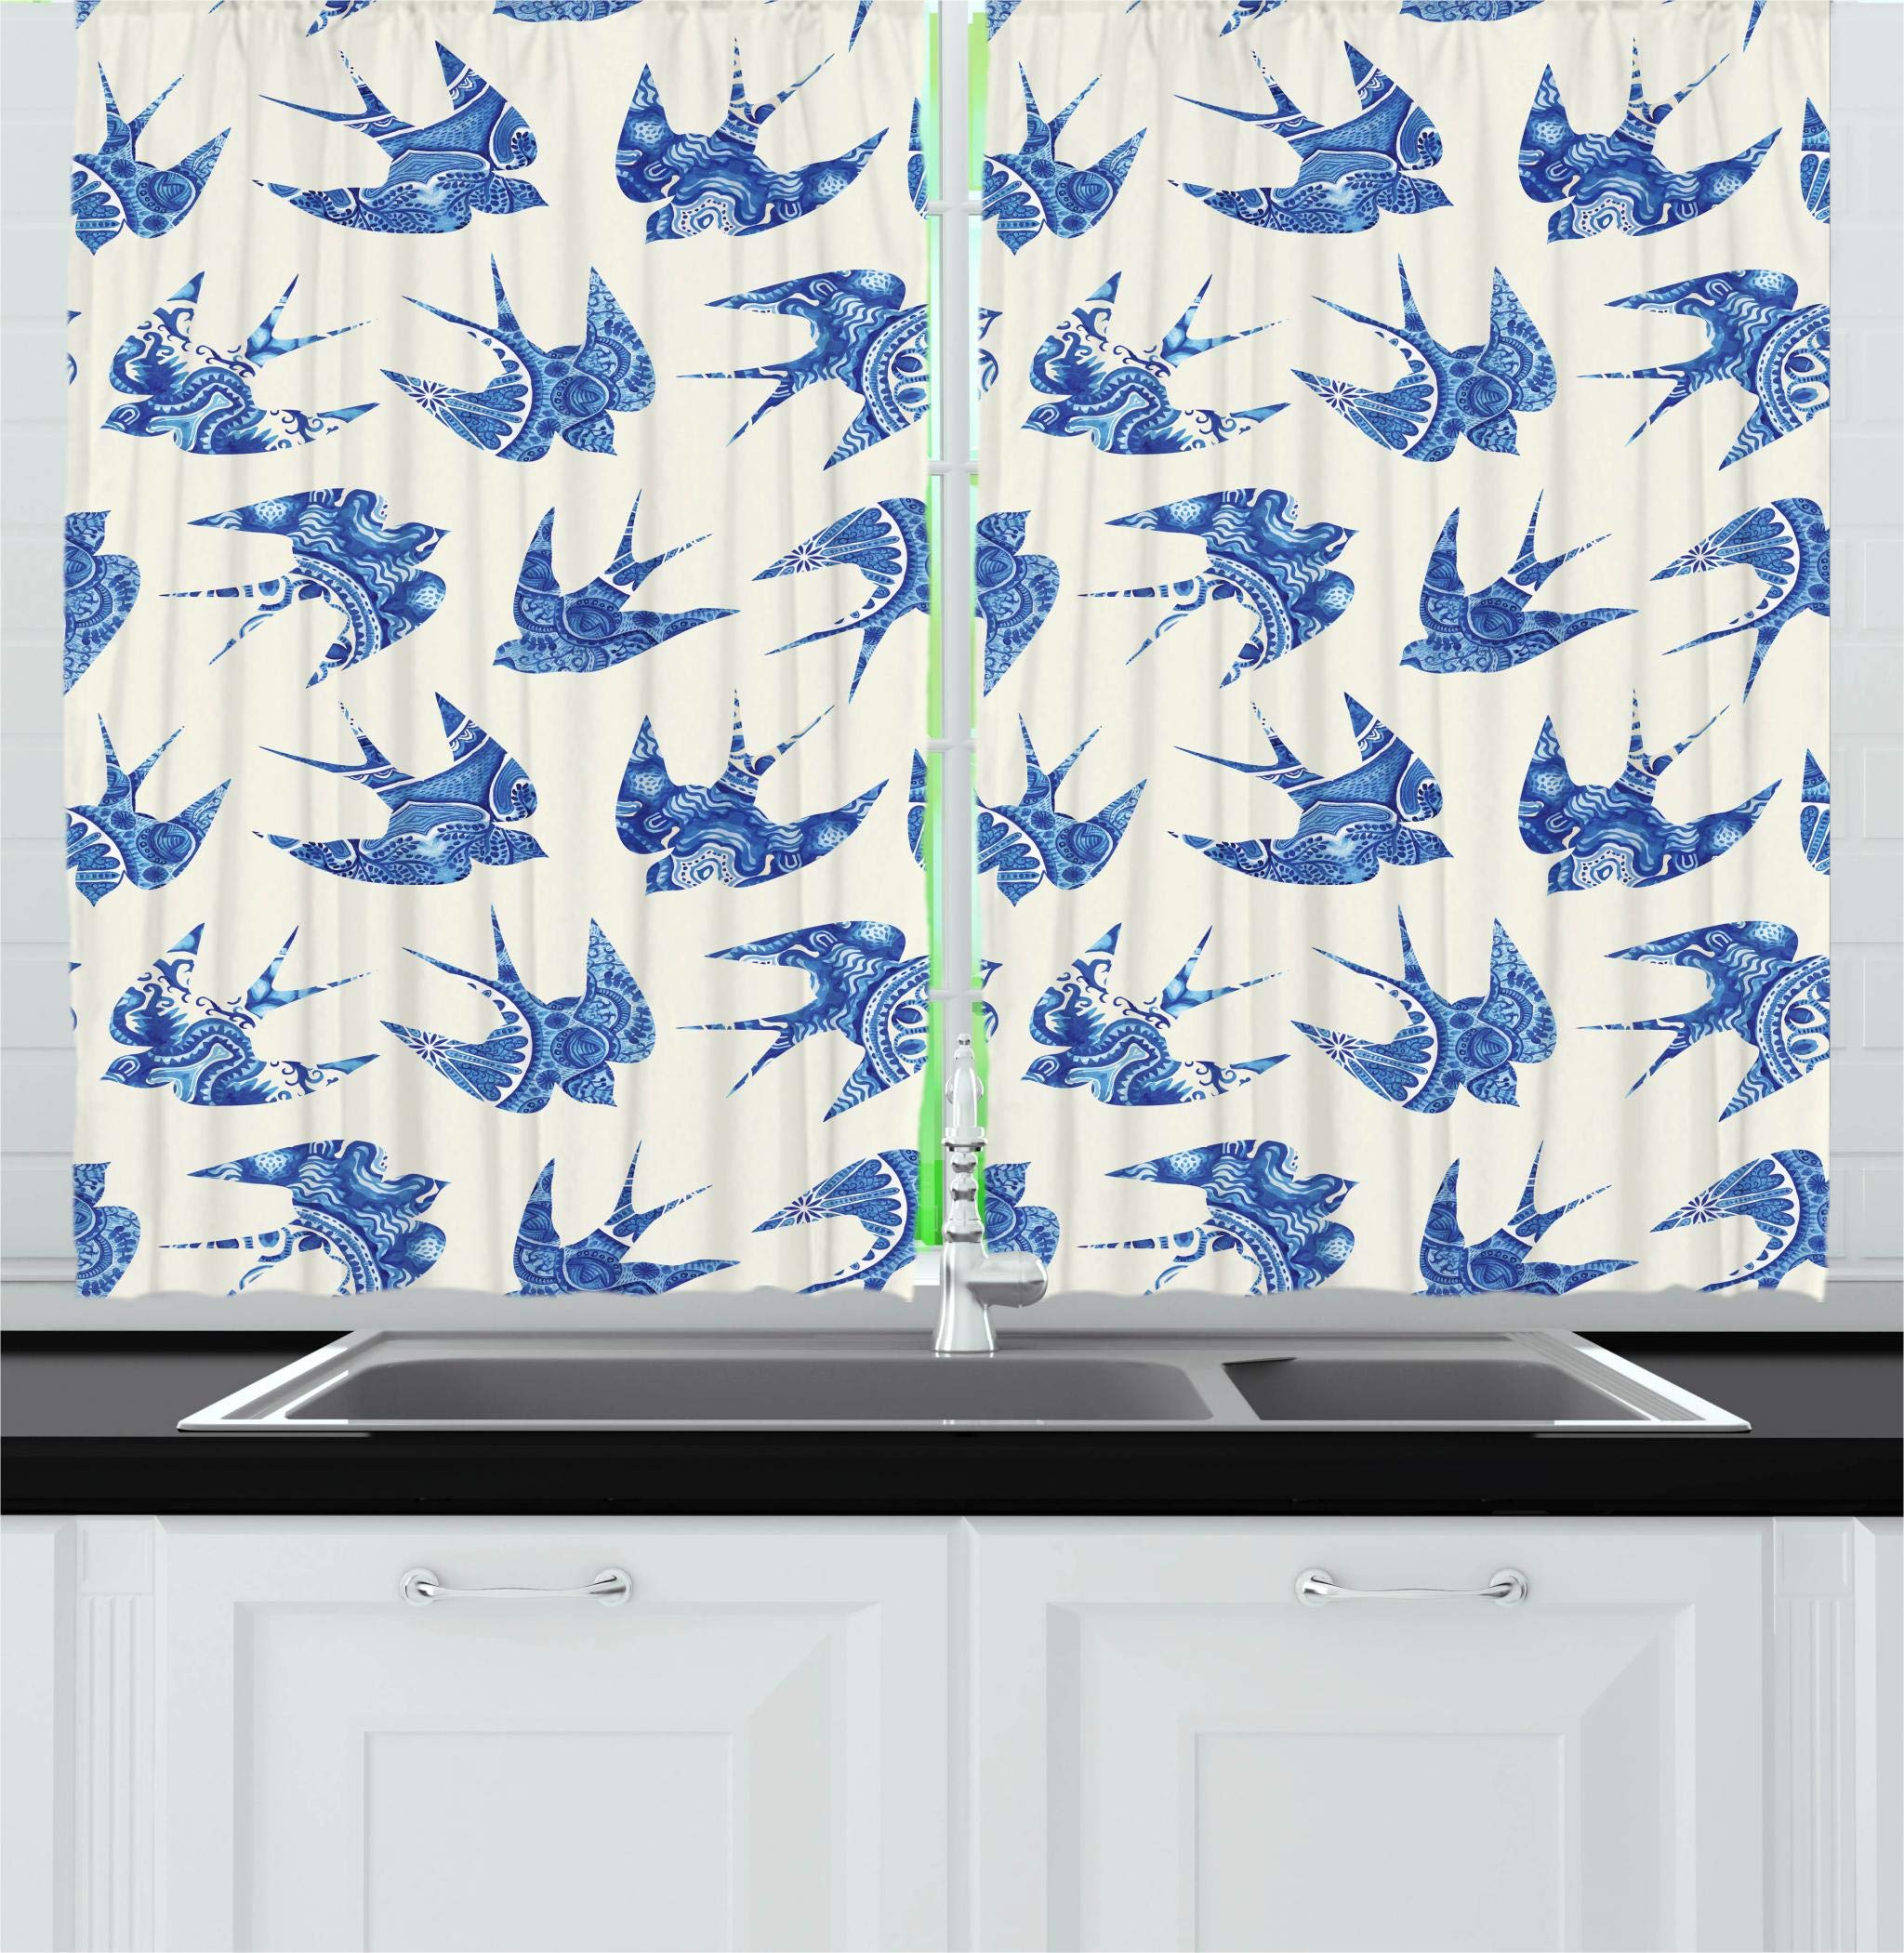 Ambesonne Animal Kitchen Curtains, Sparrows Fly Birds with Mosaic Antique Like Image Prints on Their Wings Artwork, Window Drapes 2 Panels Set for Kitchen Cafe, 55W X 39L Inches, Coconut Blue